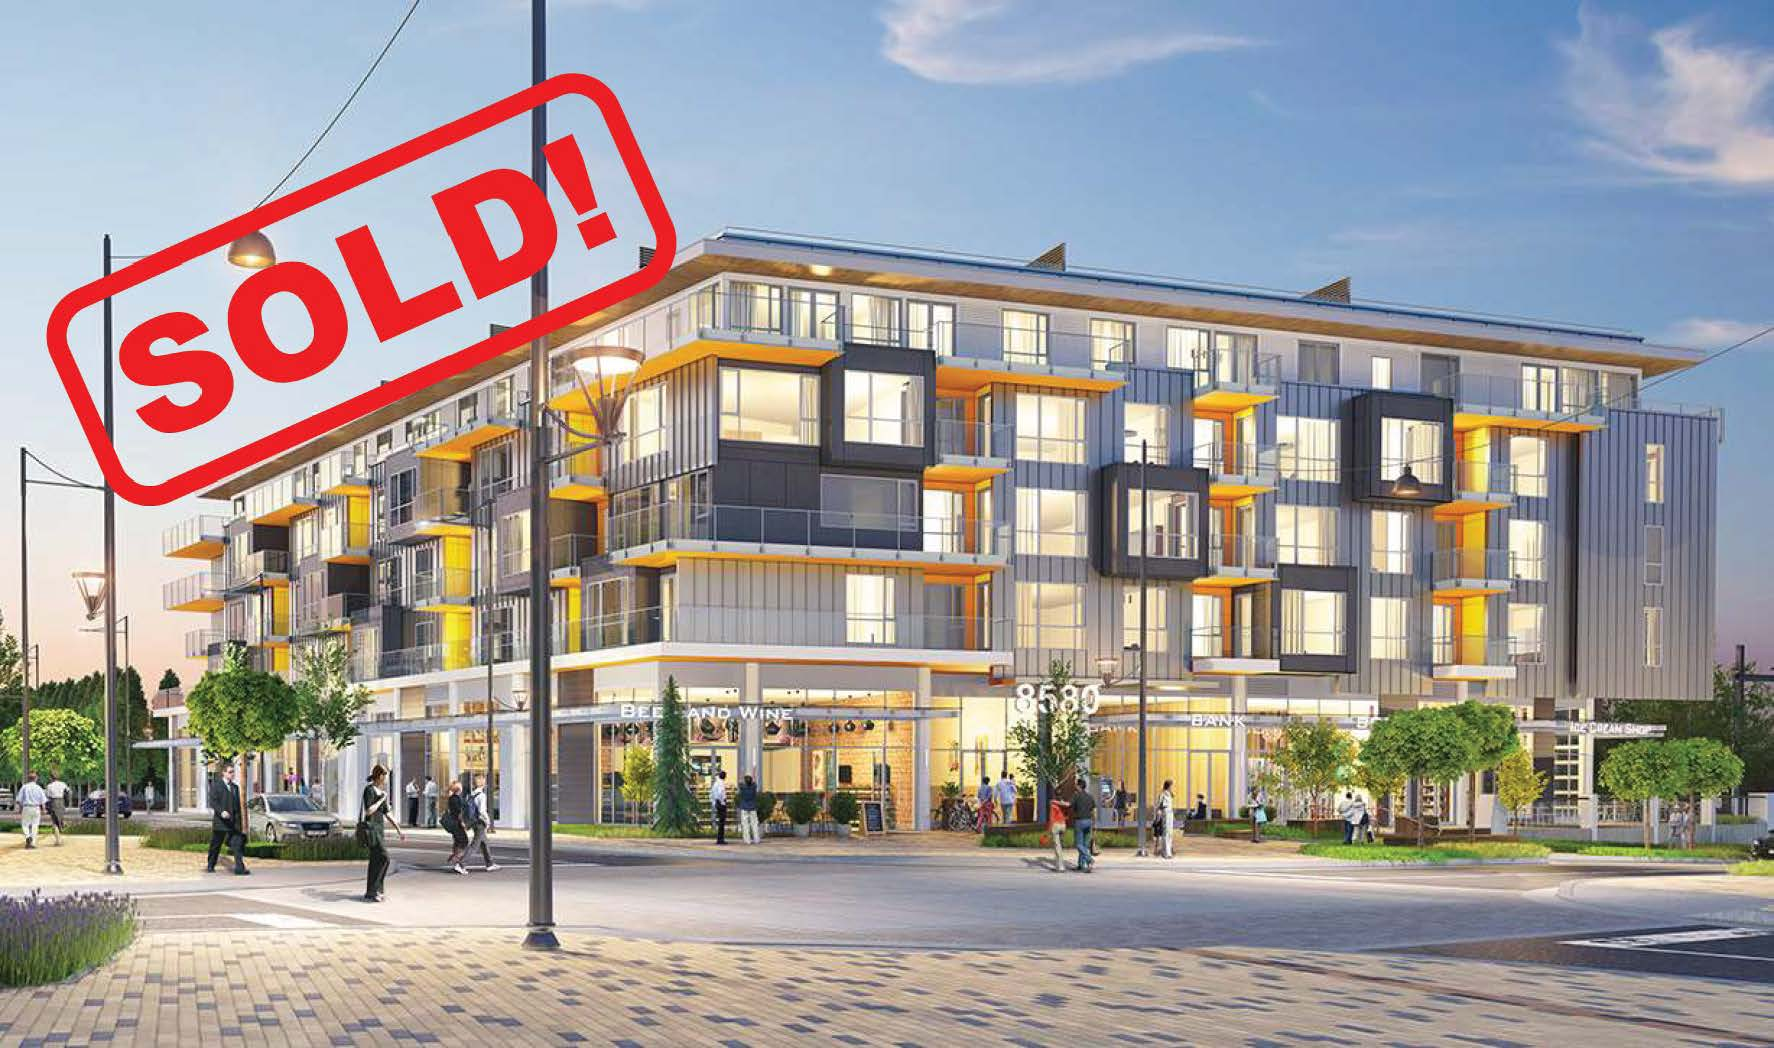 501-8580 River District Crescent   sold for: $512,000  1 Bed | 1 Bath | 635 SF